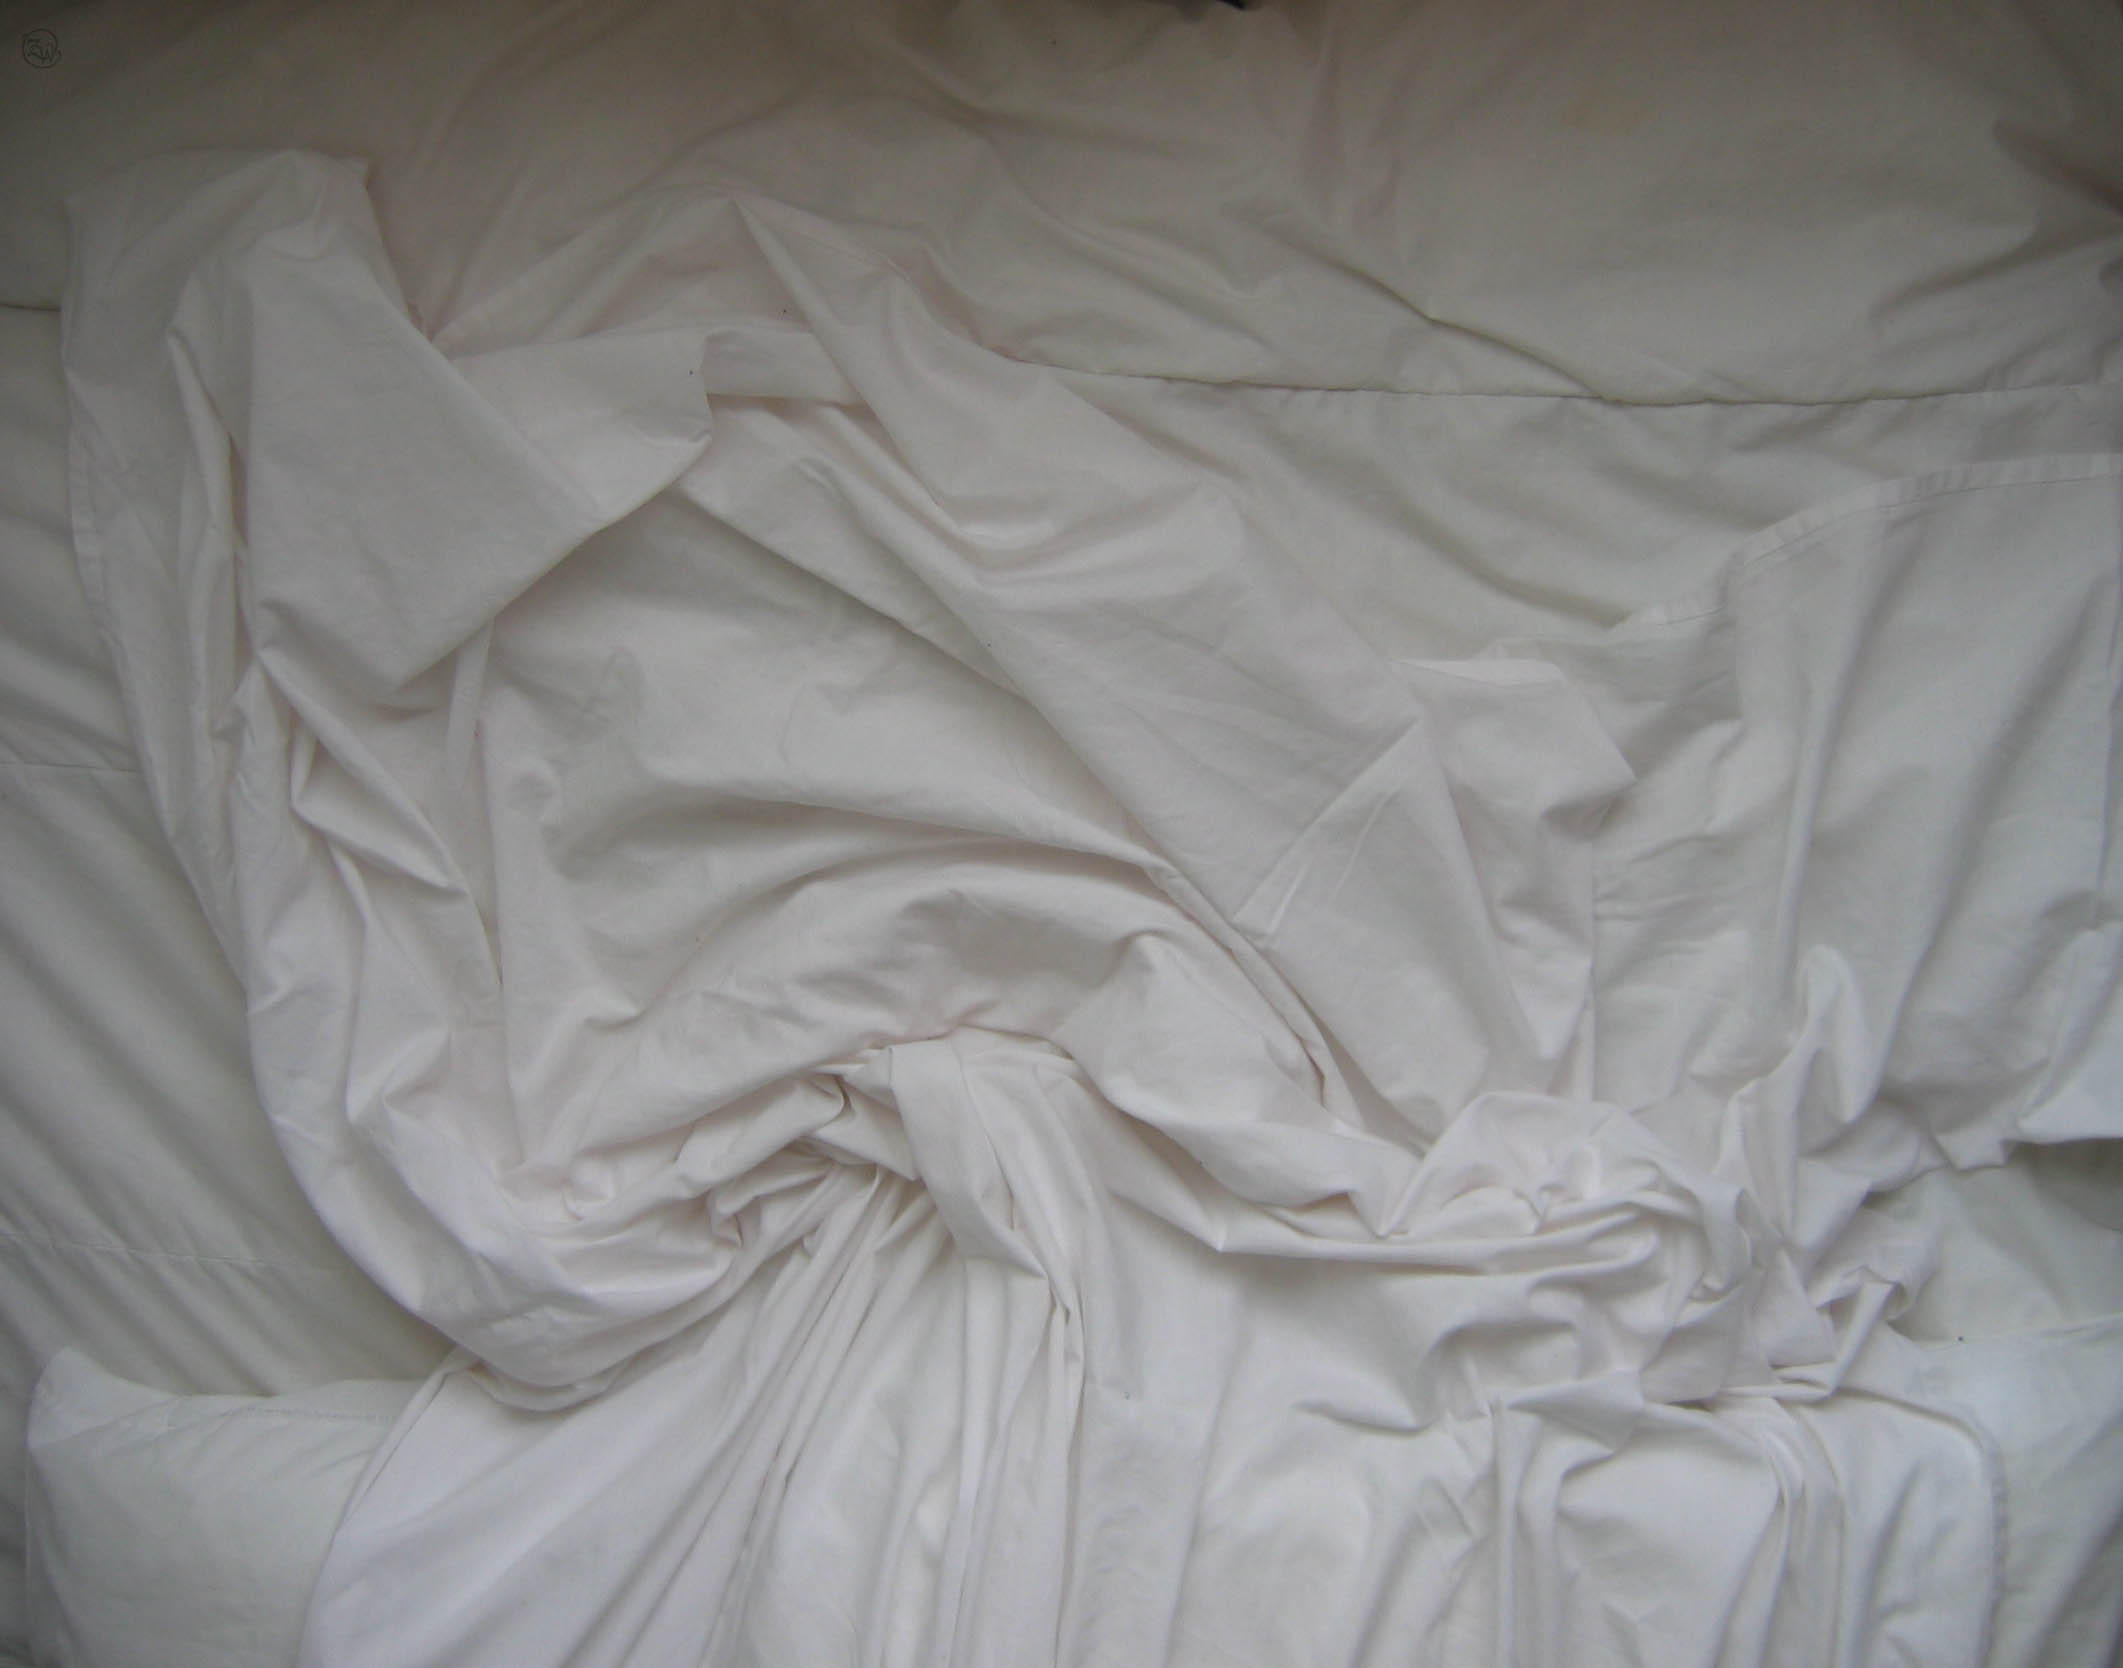 white bed sheets texture.  Bed White Sheet In White Bed Sheets Texture